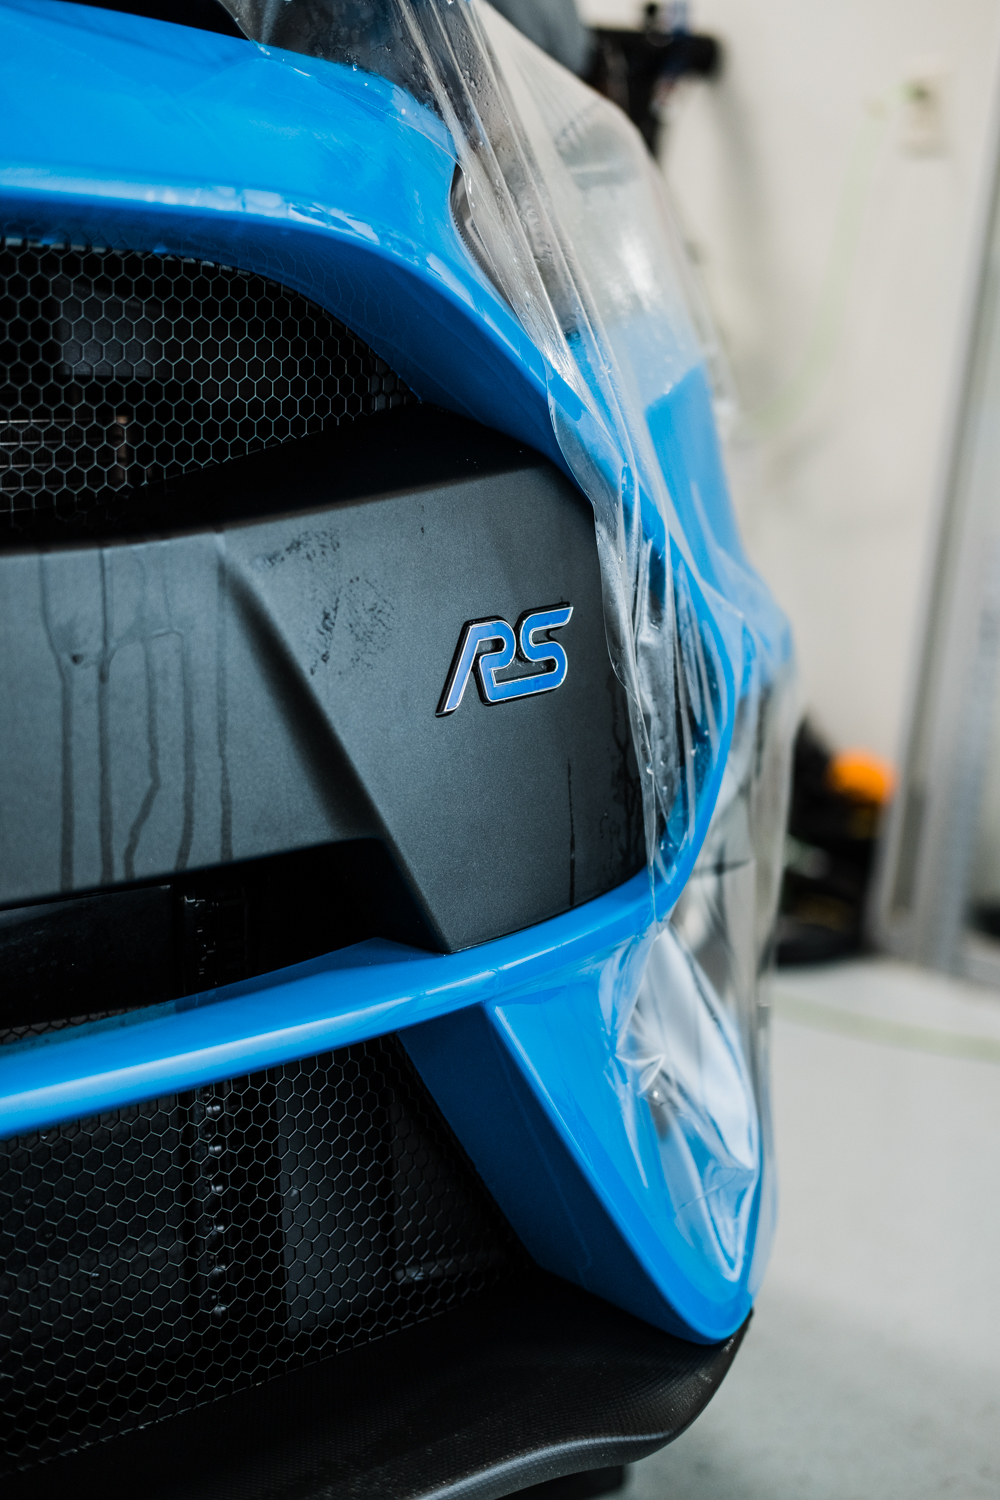 Ford Focus RS-XPEL Ultimate Paint Protection Film-Car Wash-Car Detailing-Paint Protection Film-Clear Bra-Ford Performance-112.jpg